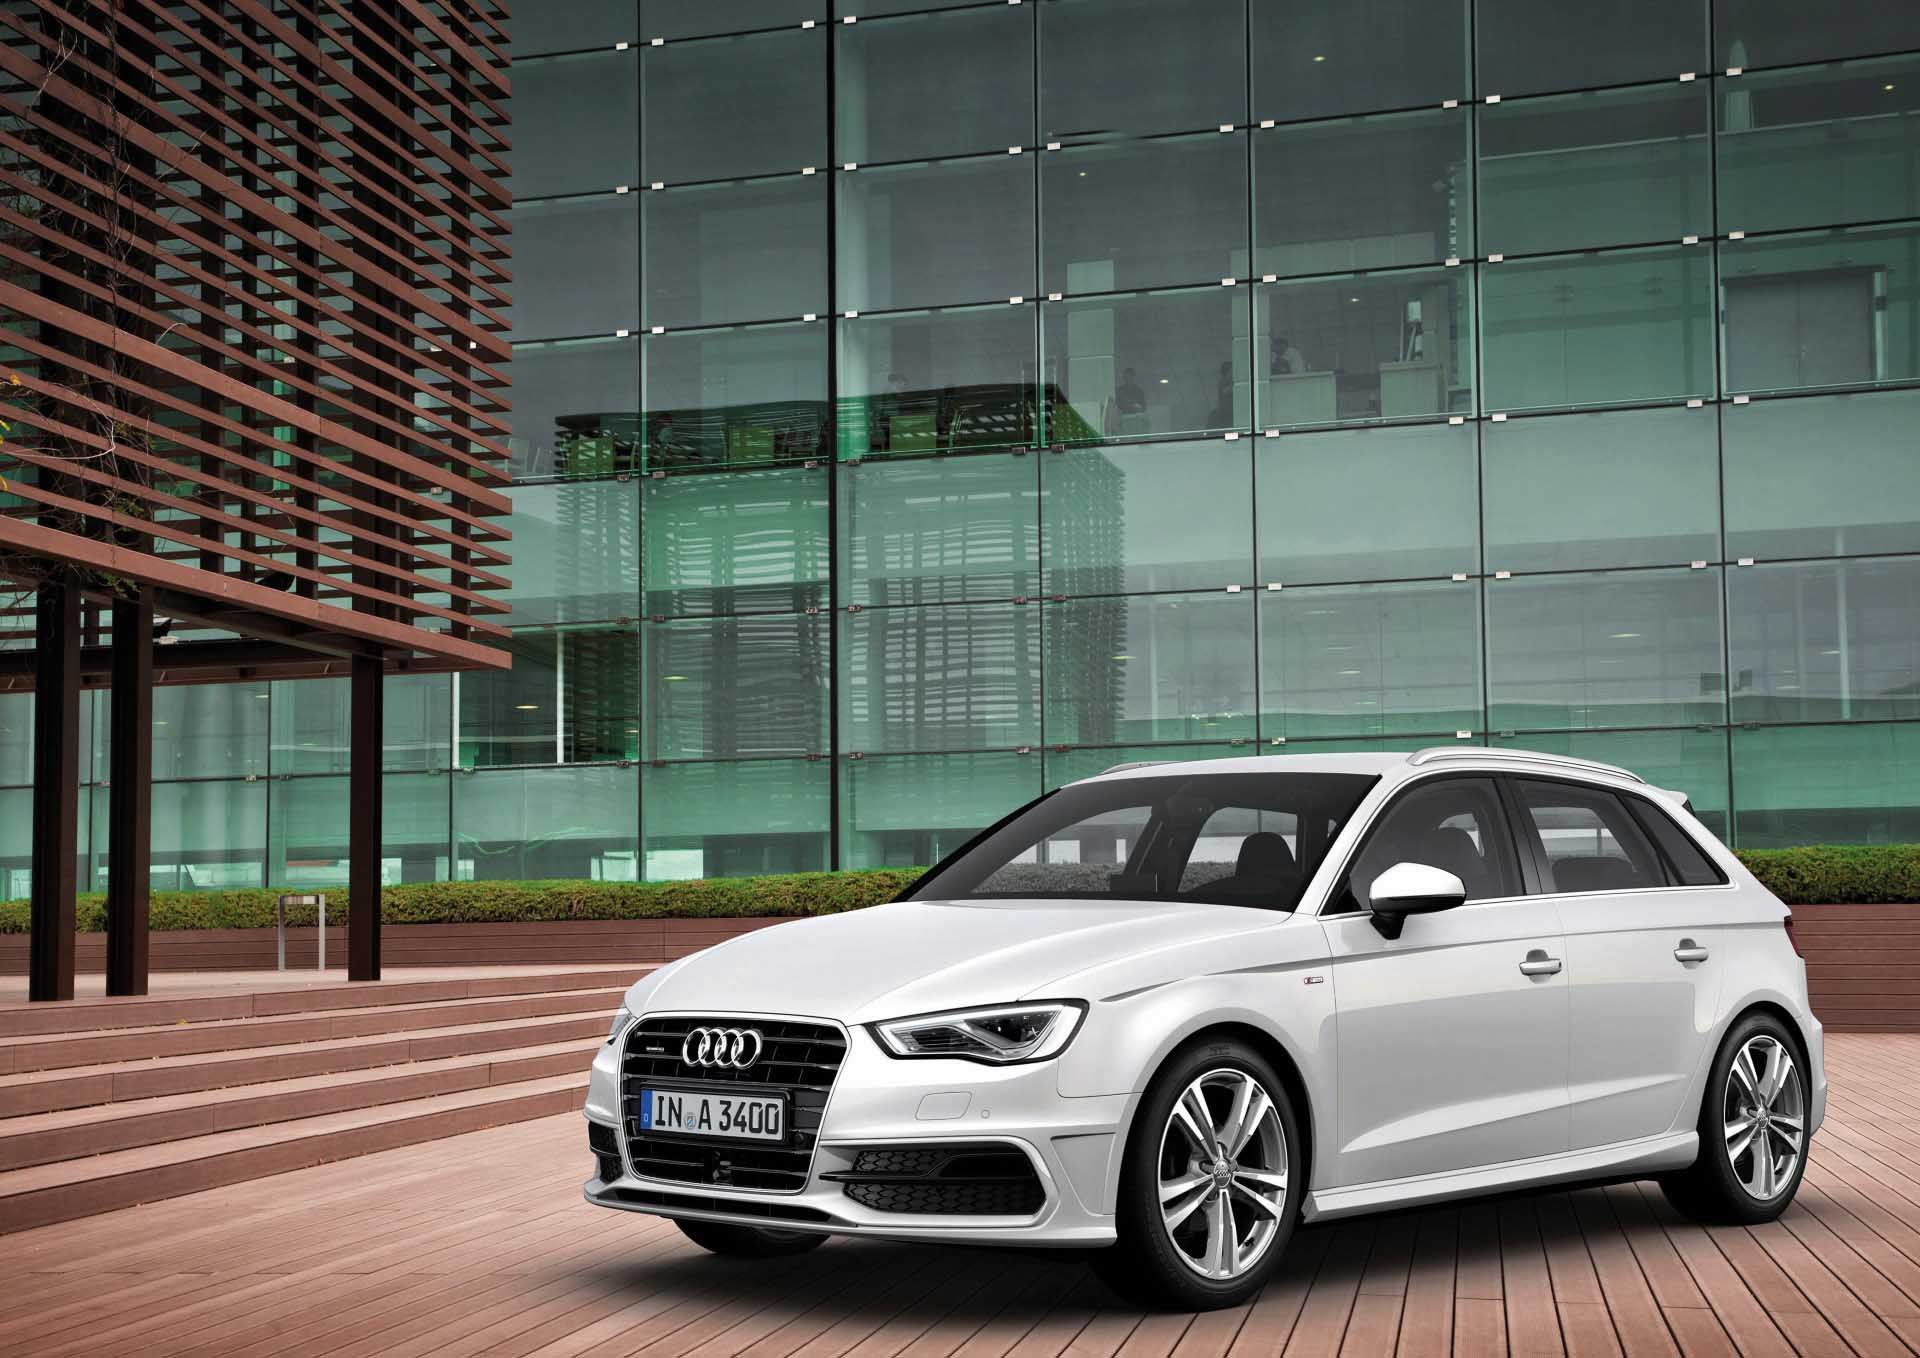 10 Awesome Audi A3 Sportback Review Full Hd Wallpaper Auto Carros Sonhos